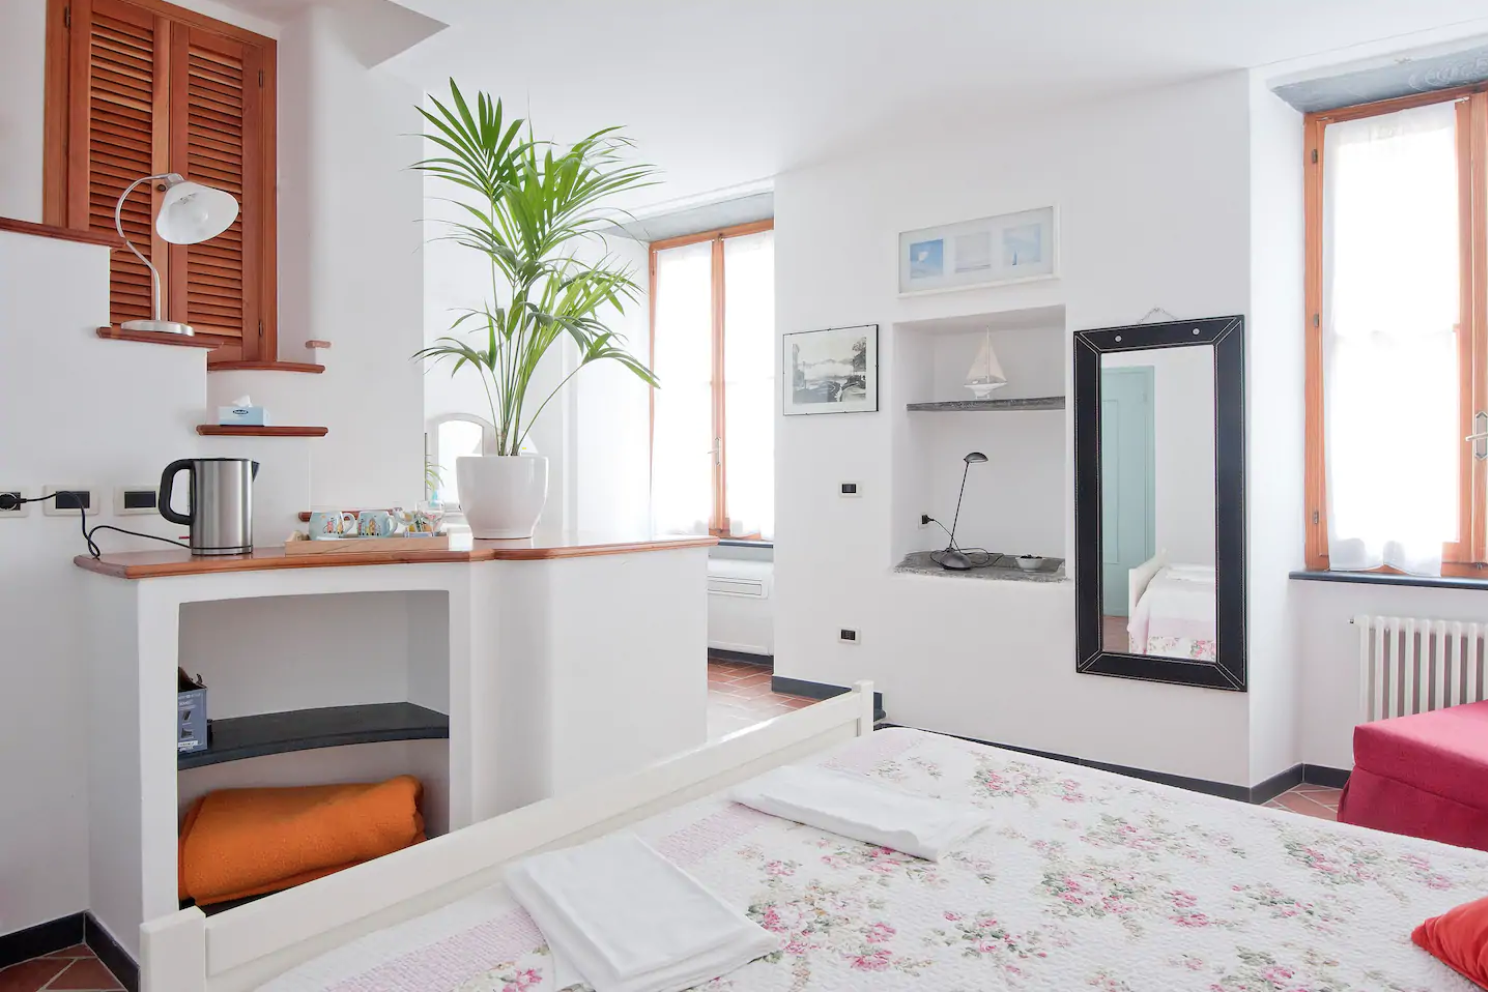 Light and airy apartment in Vernazza, Cinque Terre